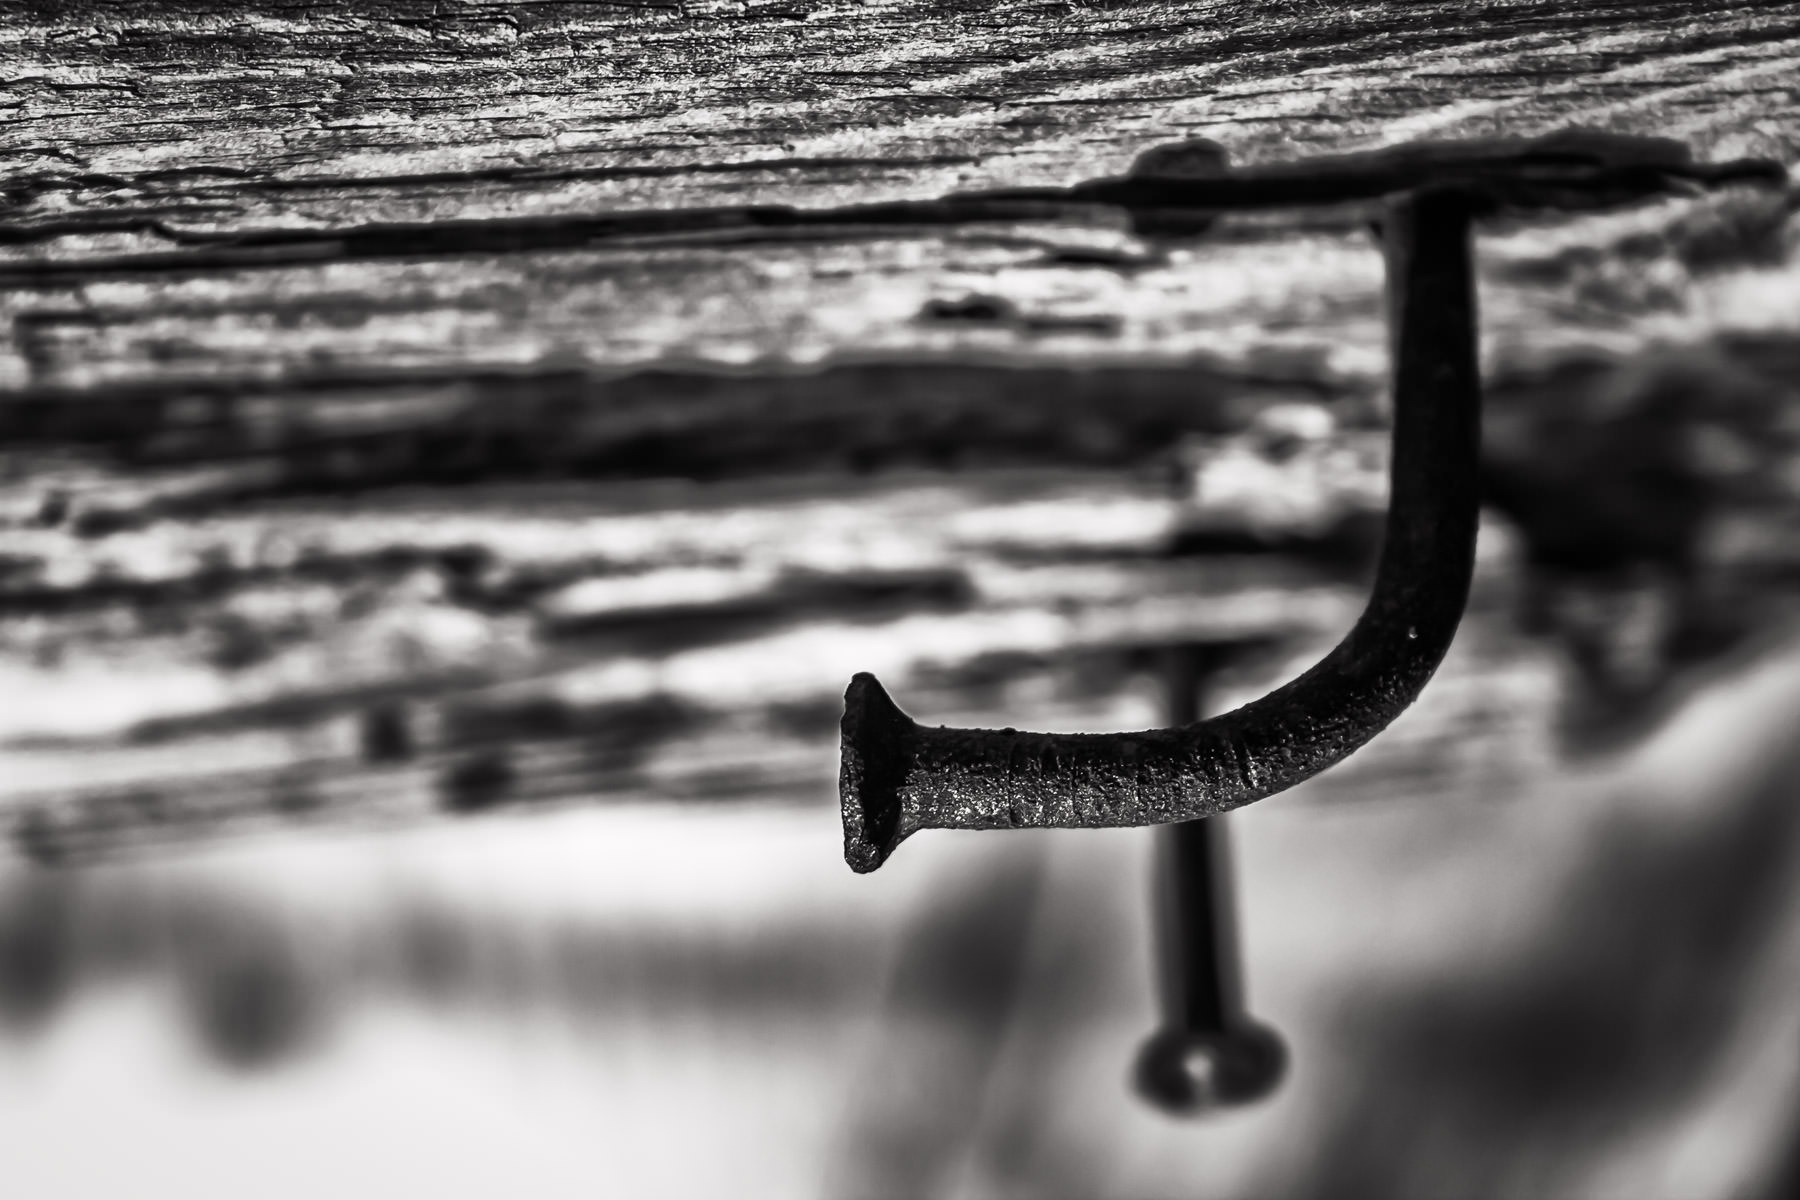 A rusted, bent nail in a dilapidated structure at Allen Heritage Village in Allen, Texas.